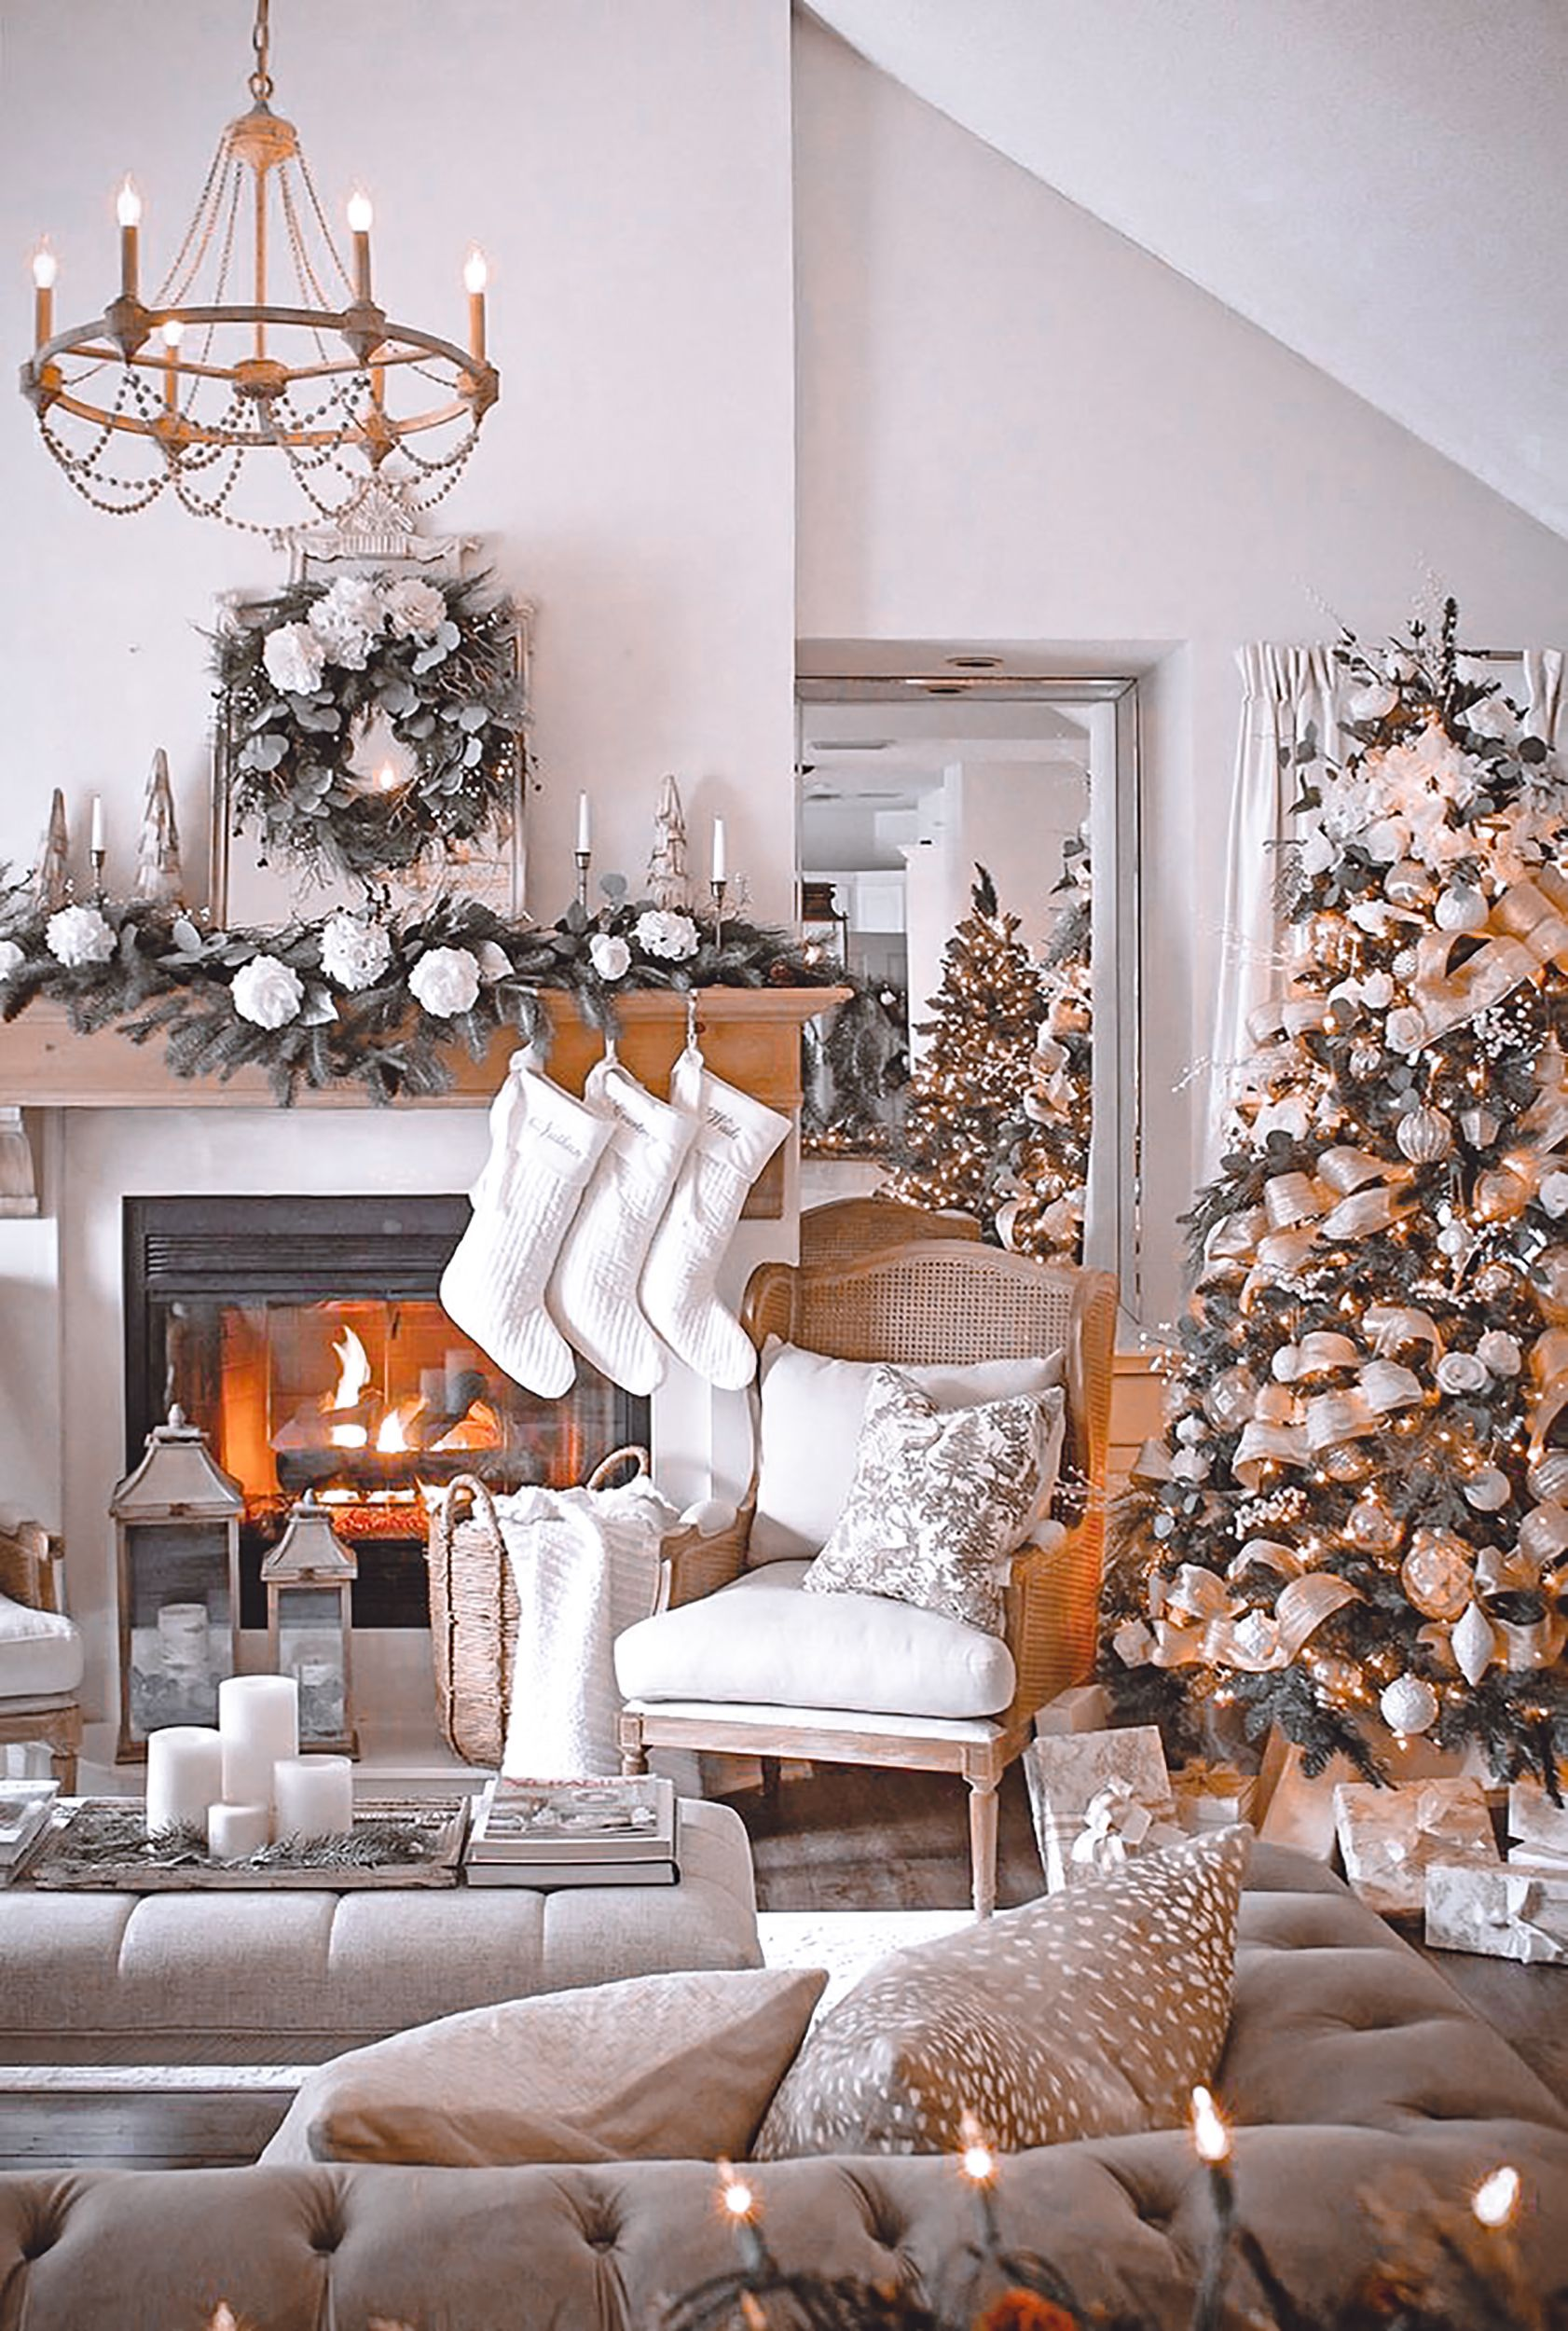 5 Mobile Lightroom Presetsholiday Presetschristmas Etsy In 2021 Christmas Decorations Living Room Christmas Room Decor Christmas Living Rooms Living room holiday decor